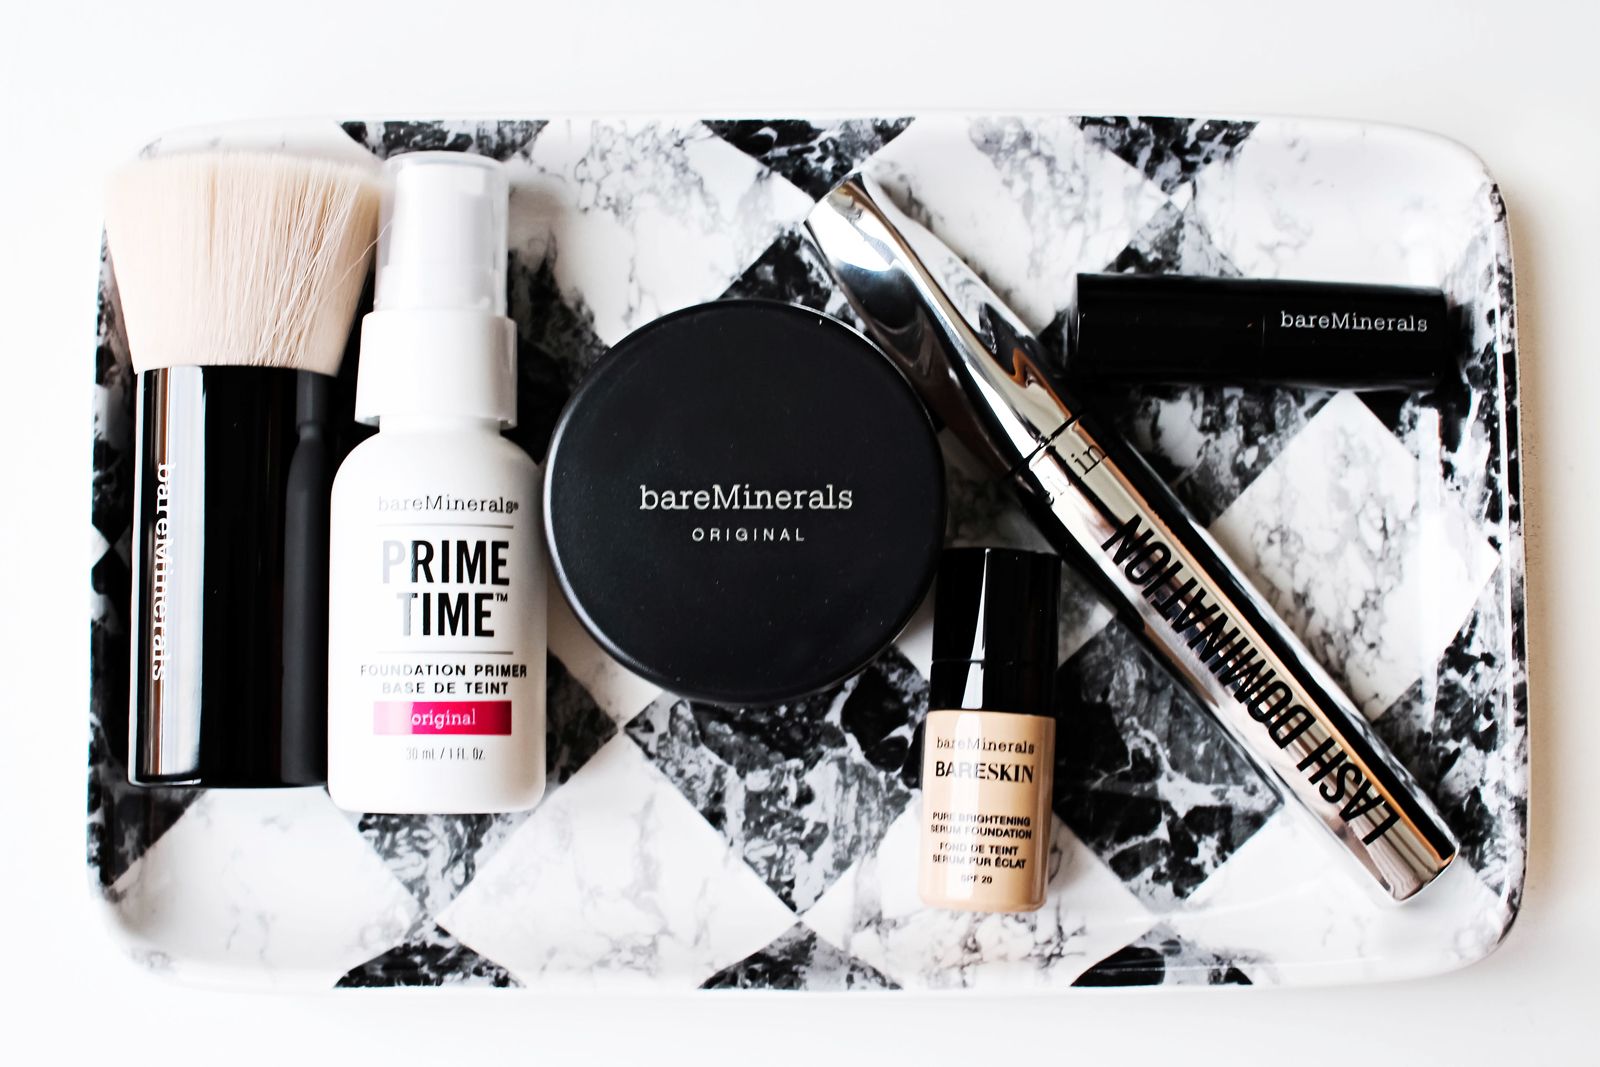 bareMinerals for Glossybox - Win Win